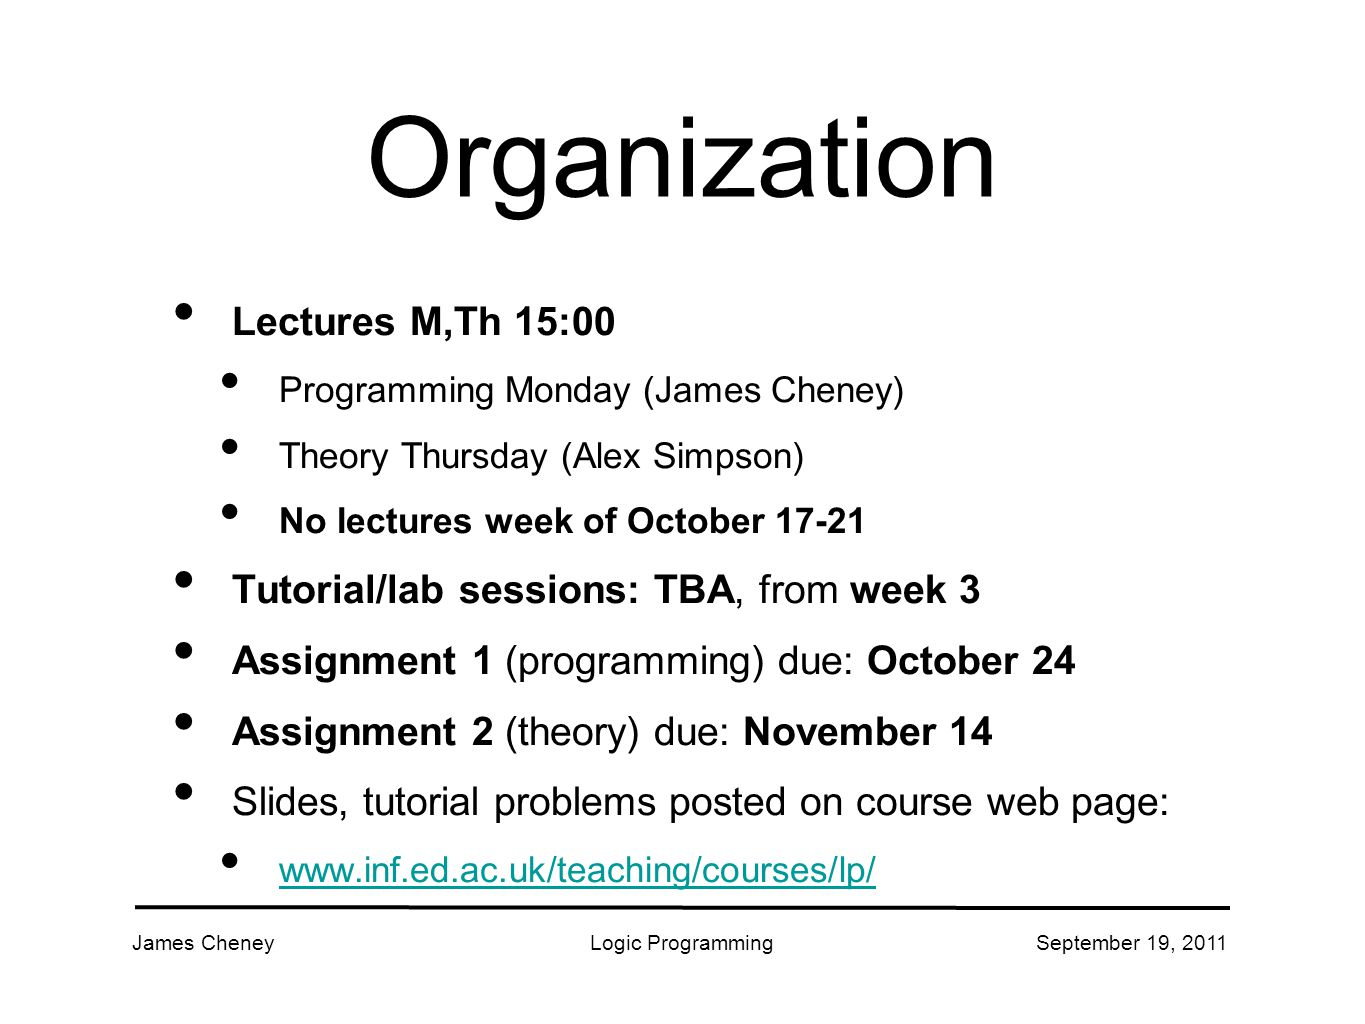 James CheneyLogic ProgrammingSeptember 19, 2011 Organization Lectures M,Th 15:00 Programming Monday (James Cheney) Theory Thursday (Alex Simpson) No lectures week of October Tutorial/lab sessions: TBA, from week 3 Assignment 1 (programming) due: October 24 Assignment 2 (theory) due: November 14 Slides, tutorial problems posted on course web page: